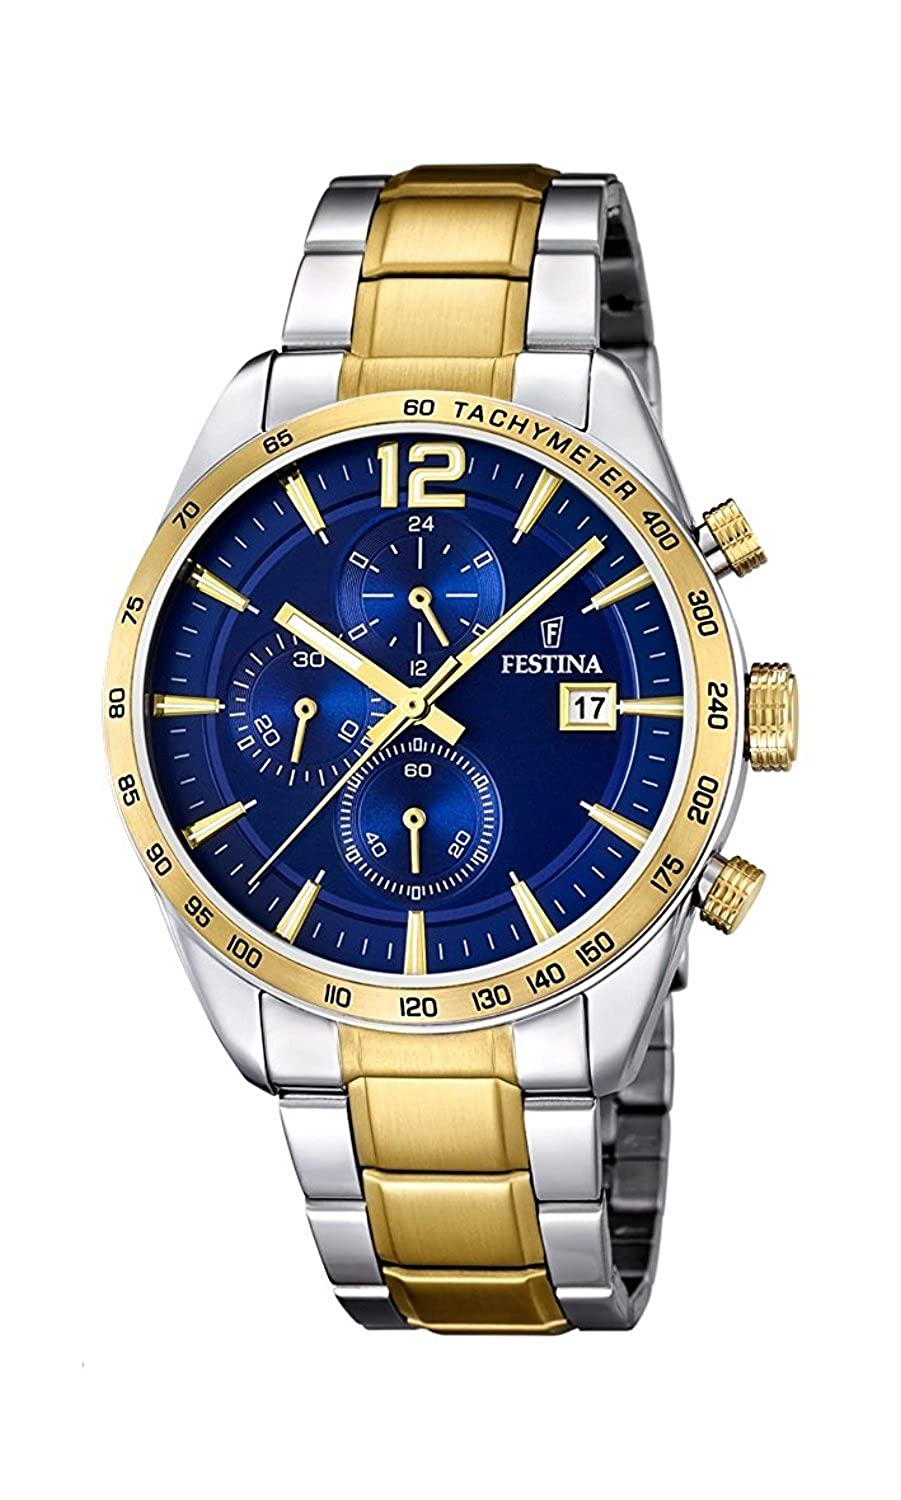 Amazon.com: FESTINA watch mens chronograph breath F16761 / 2 Mens [regular imported goods]: Watches